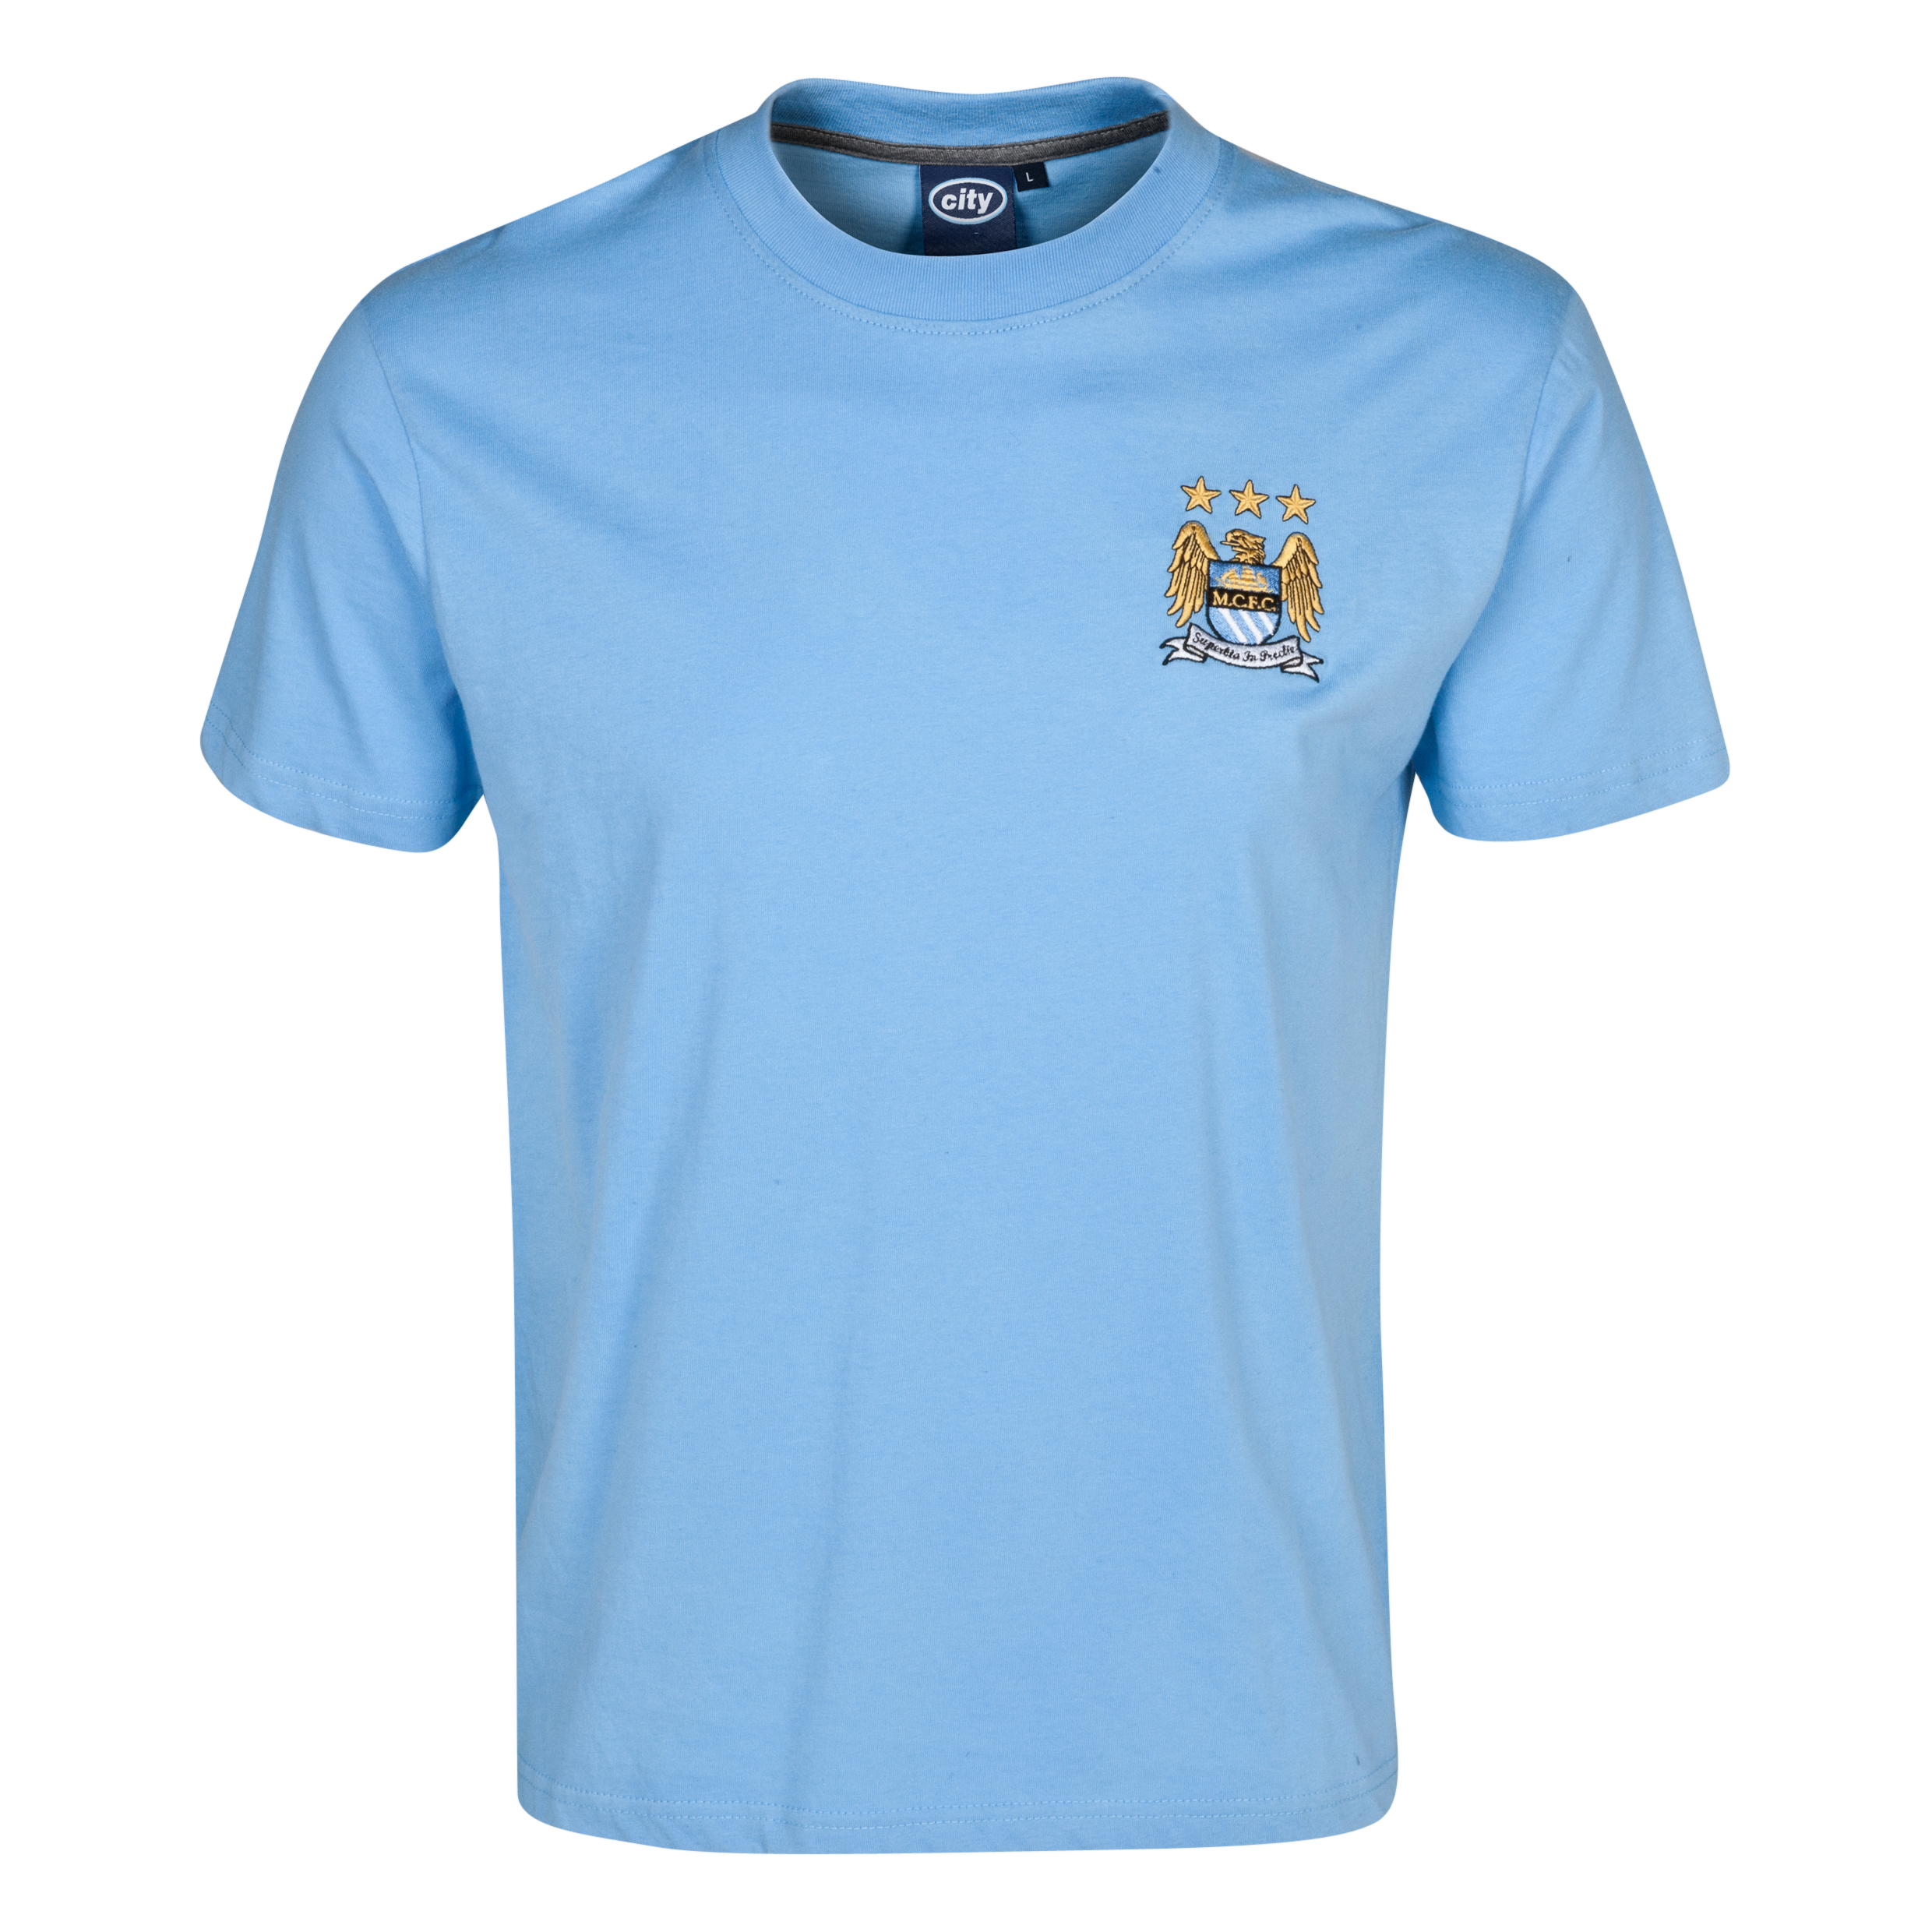 Manchester City Essentials Stitch T-Shirt - Mens Lt Blue